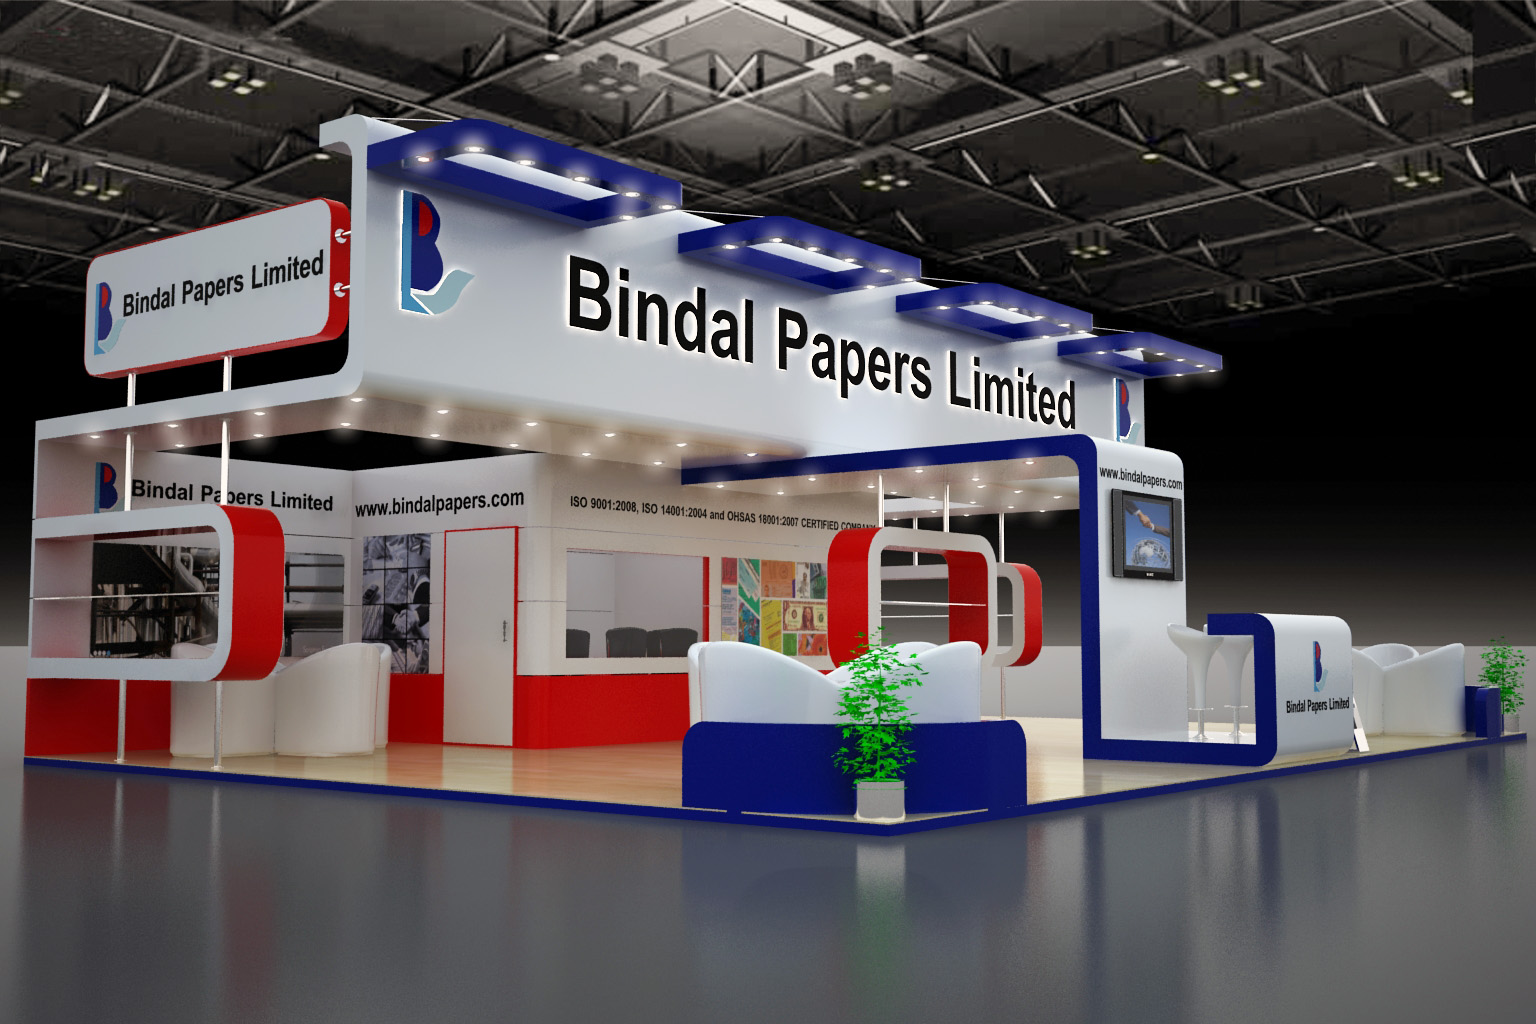 Exhibition Stall Designer Job : Exhibition stalls by dharmveer parsad at coroflot